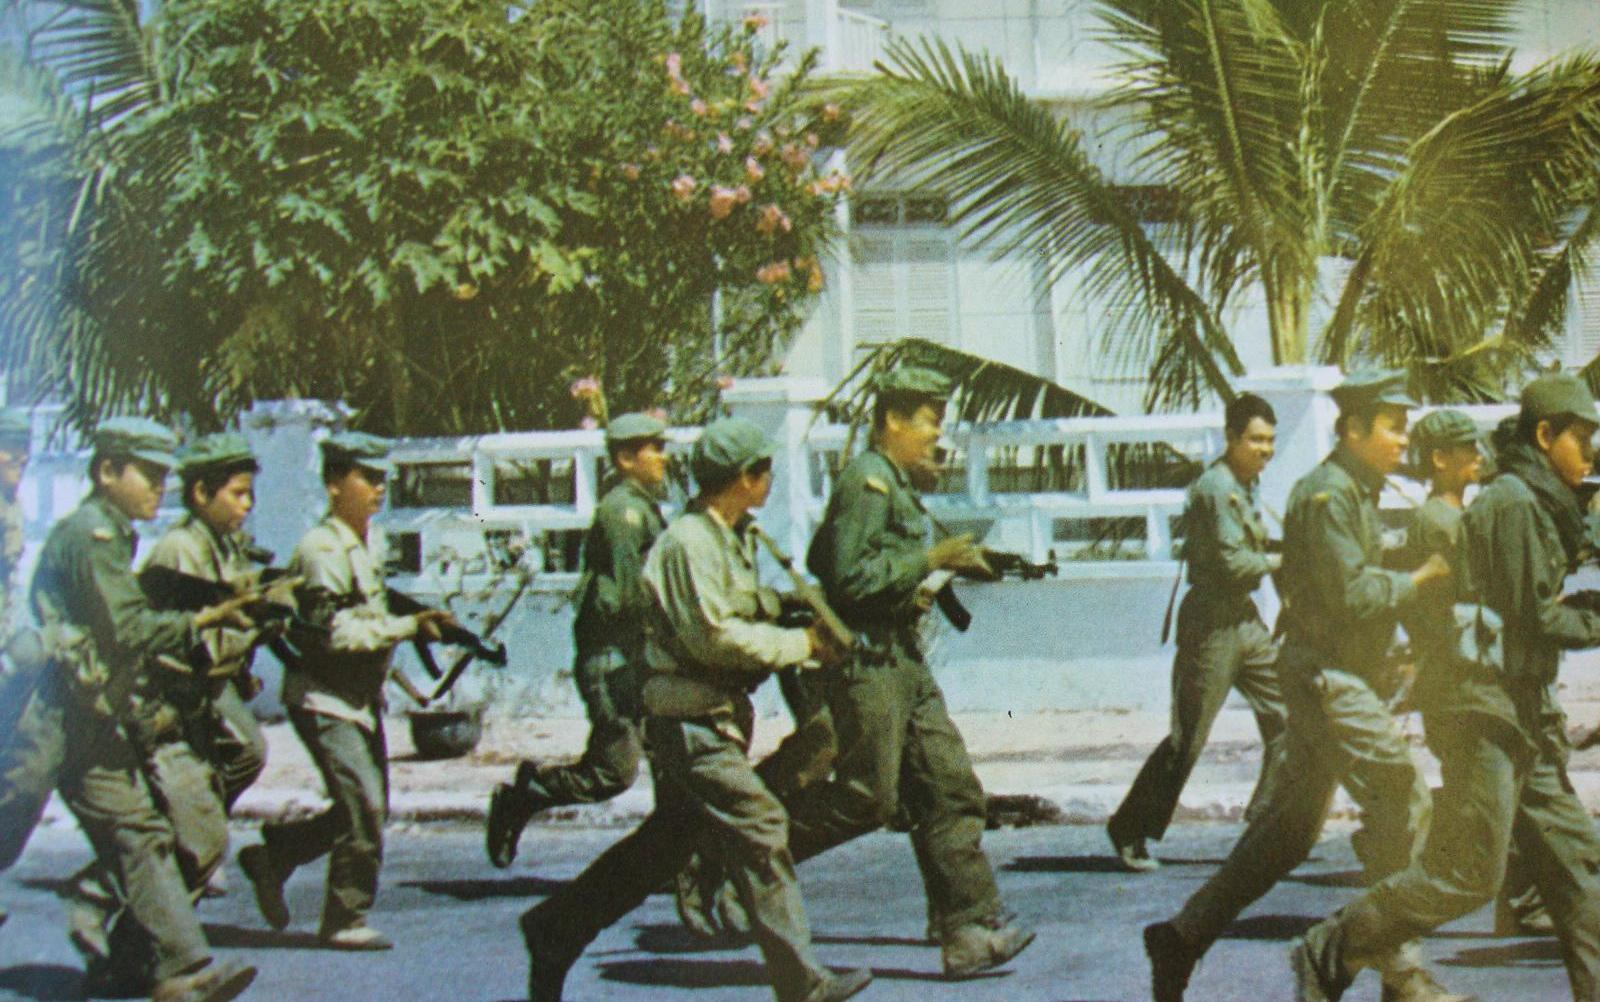 the history of cambodia The khmer rouge and cambodia the history place™ links to external sites will open in new browser windows and are not endorsed by the cold war museum.